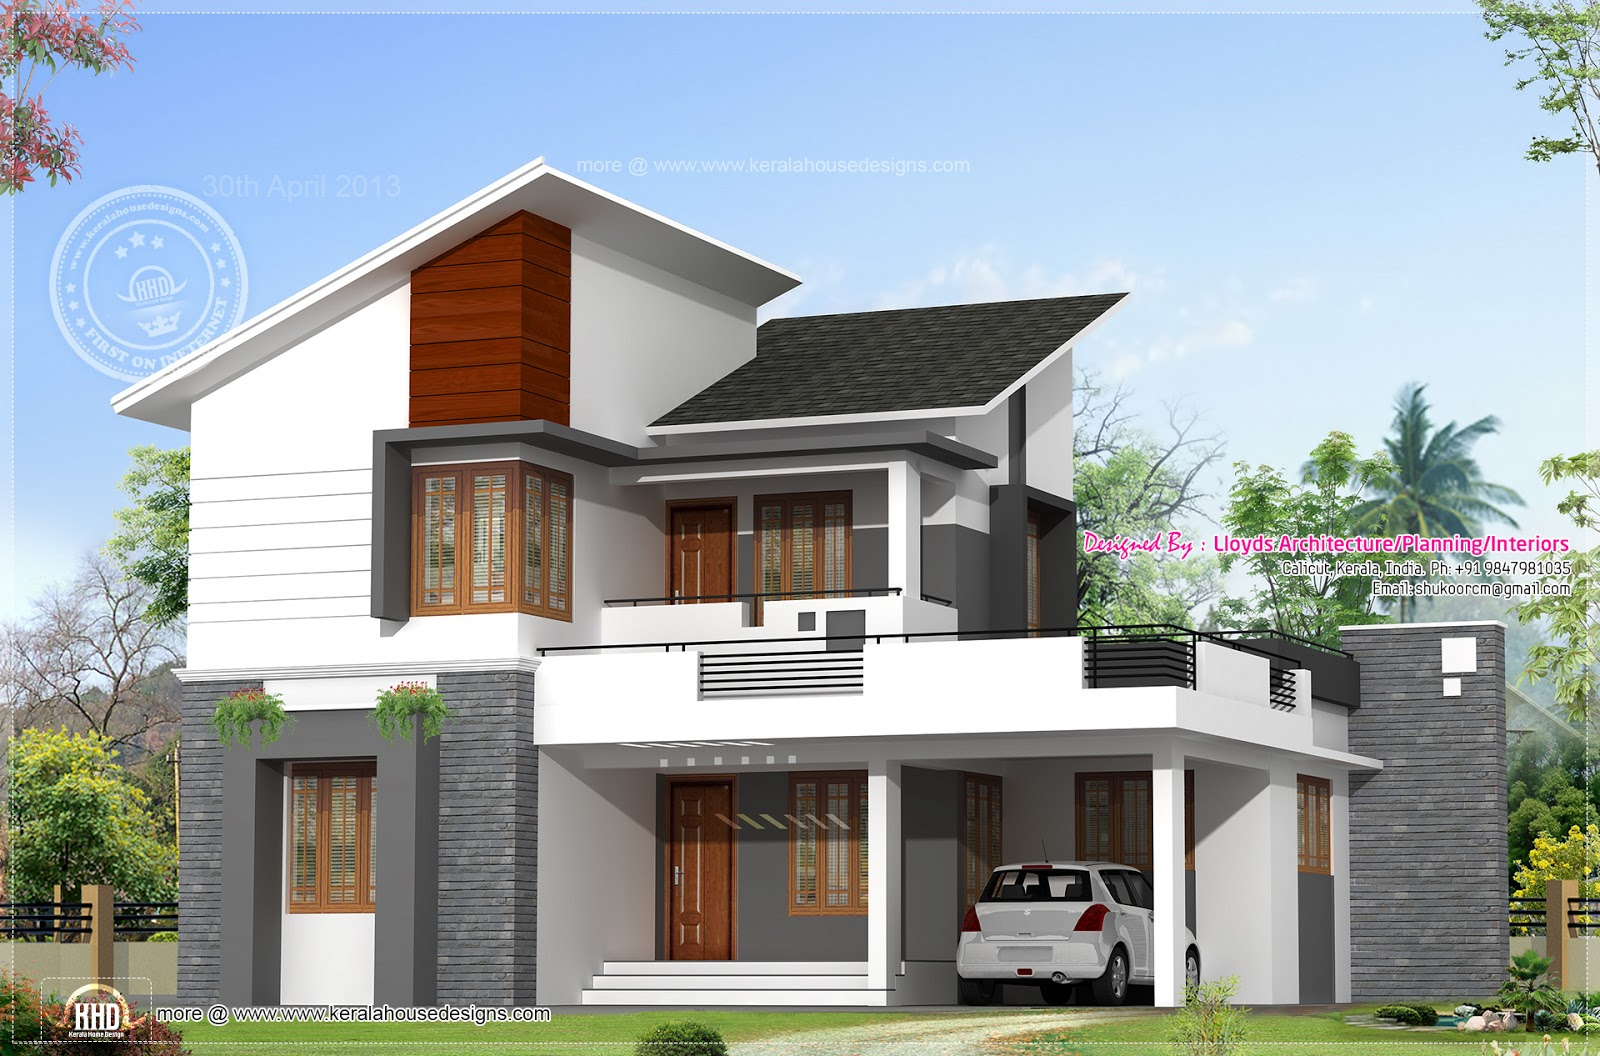 A semi contemporary villa with sloping roofs and open for Terrace elevation designs